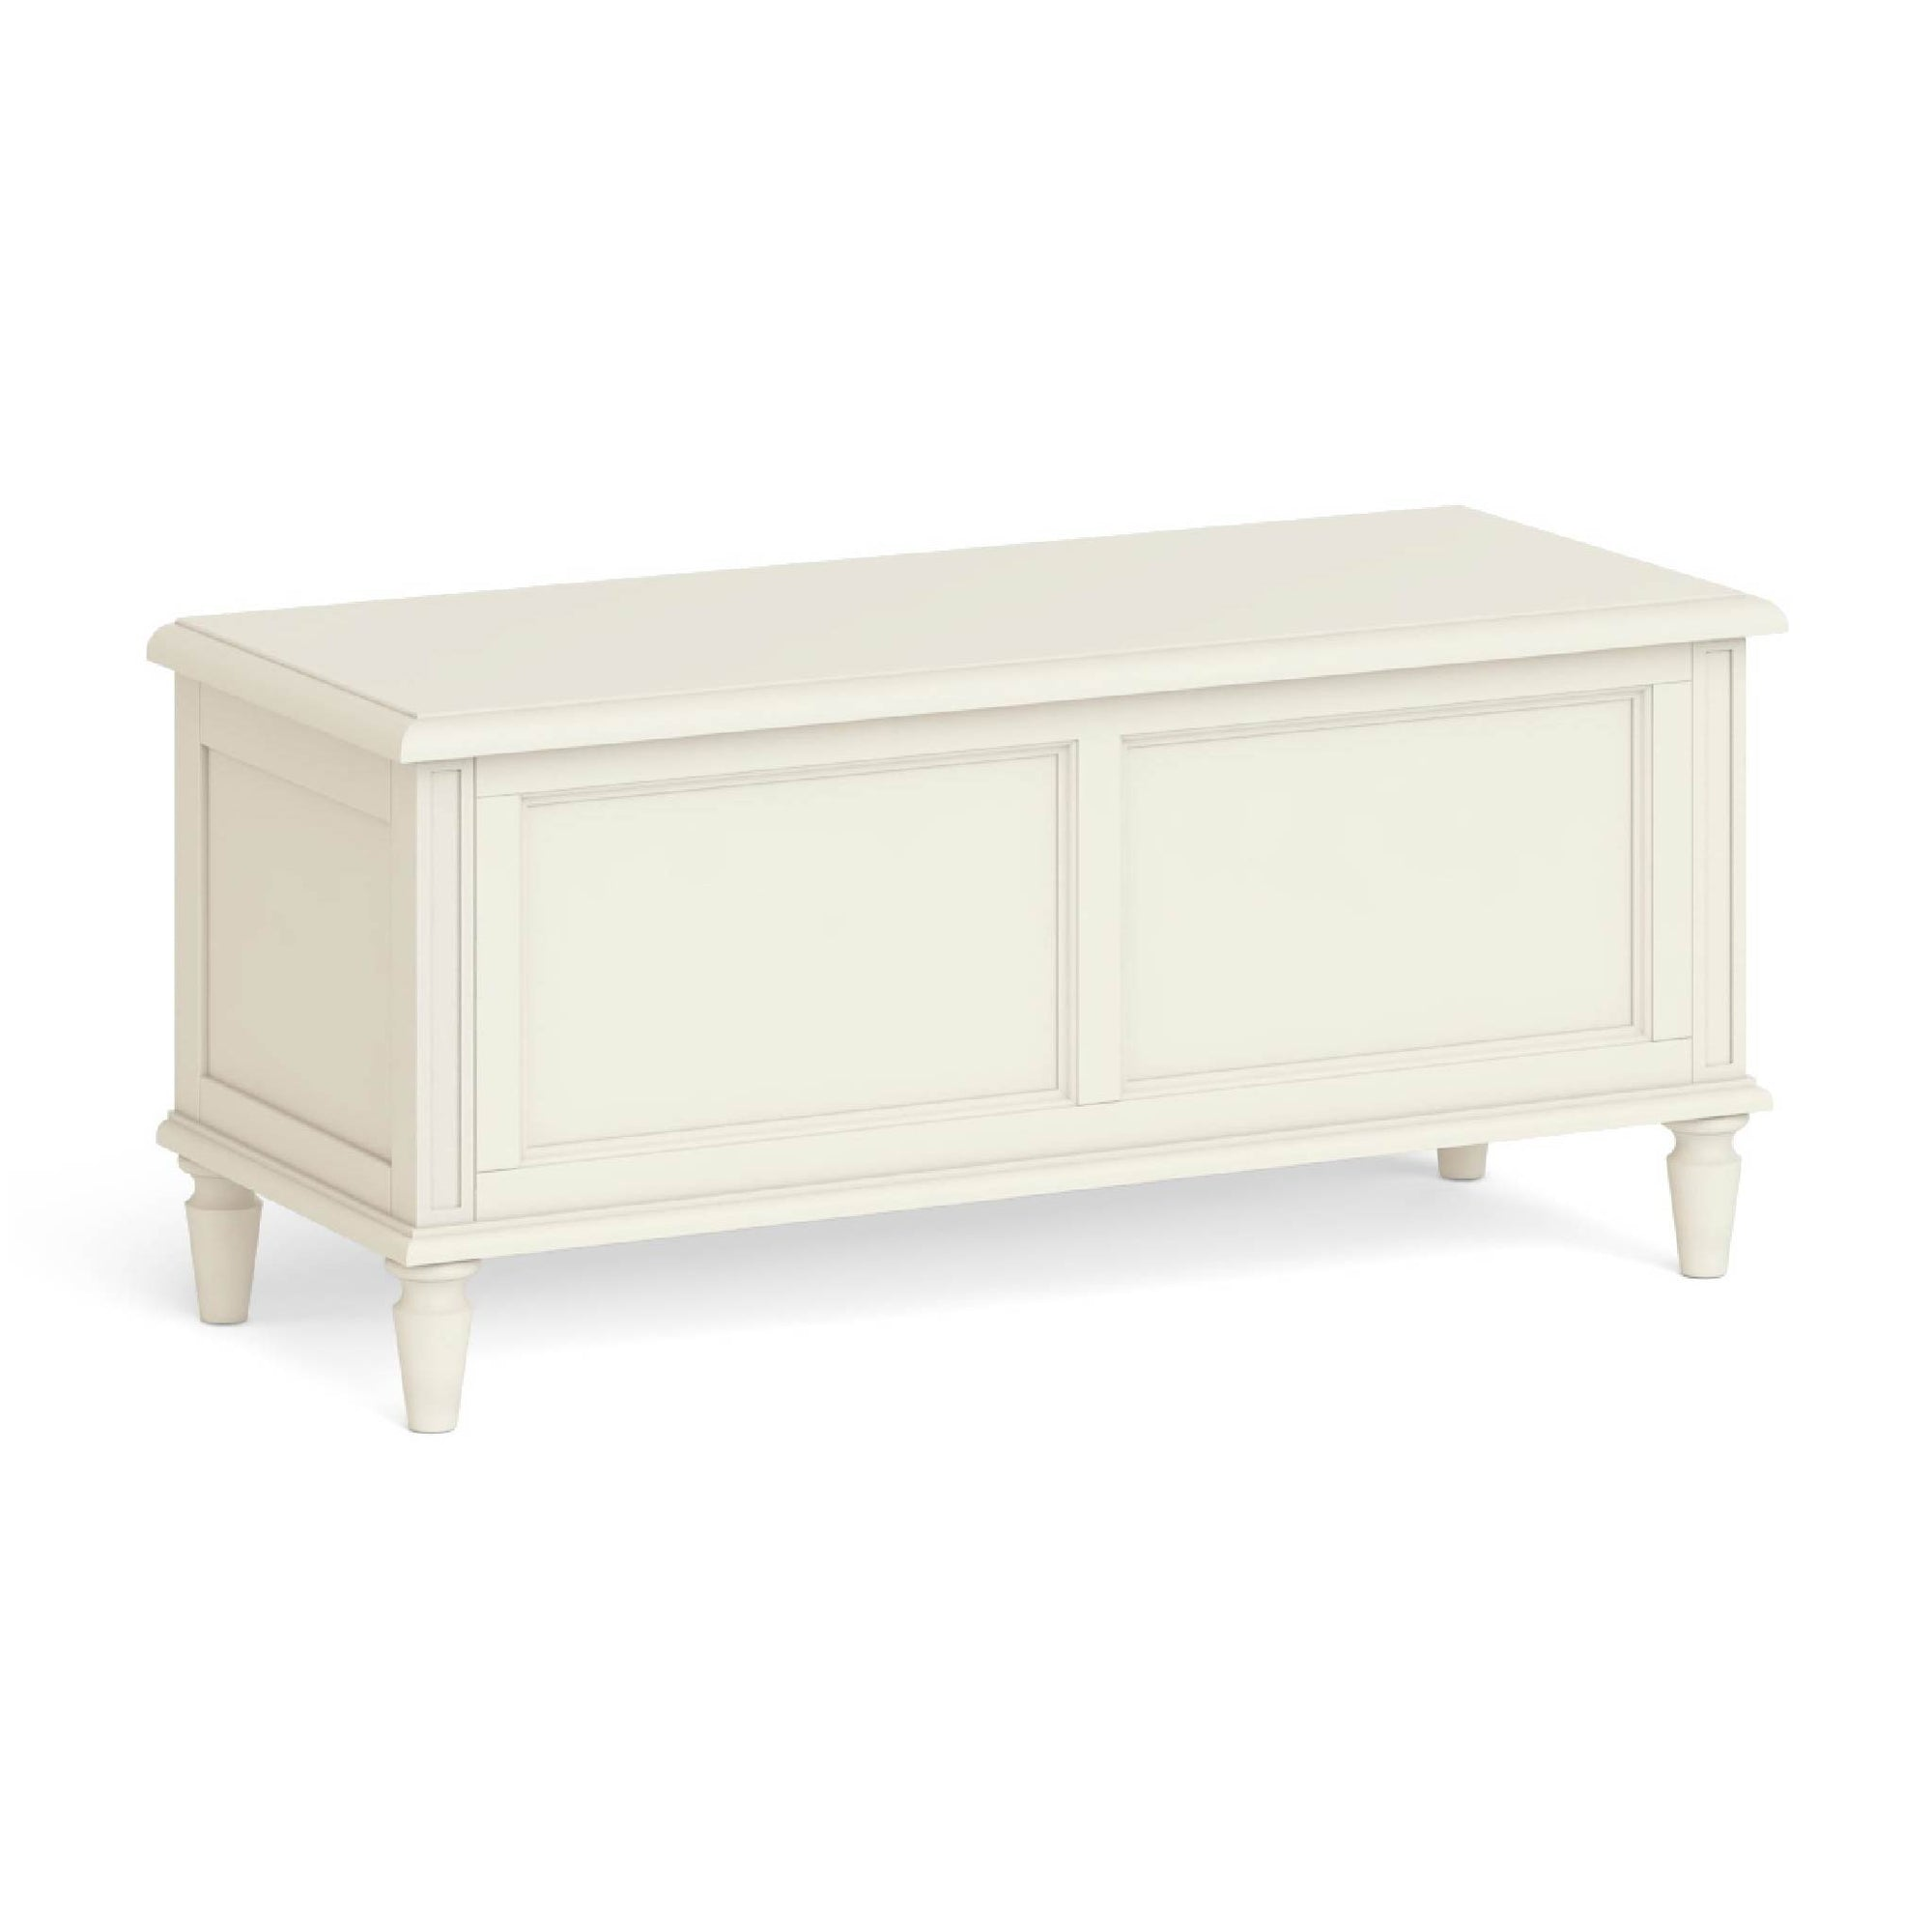 Mulsanne Cream Painted Ottoman Blanket Box